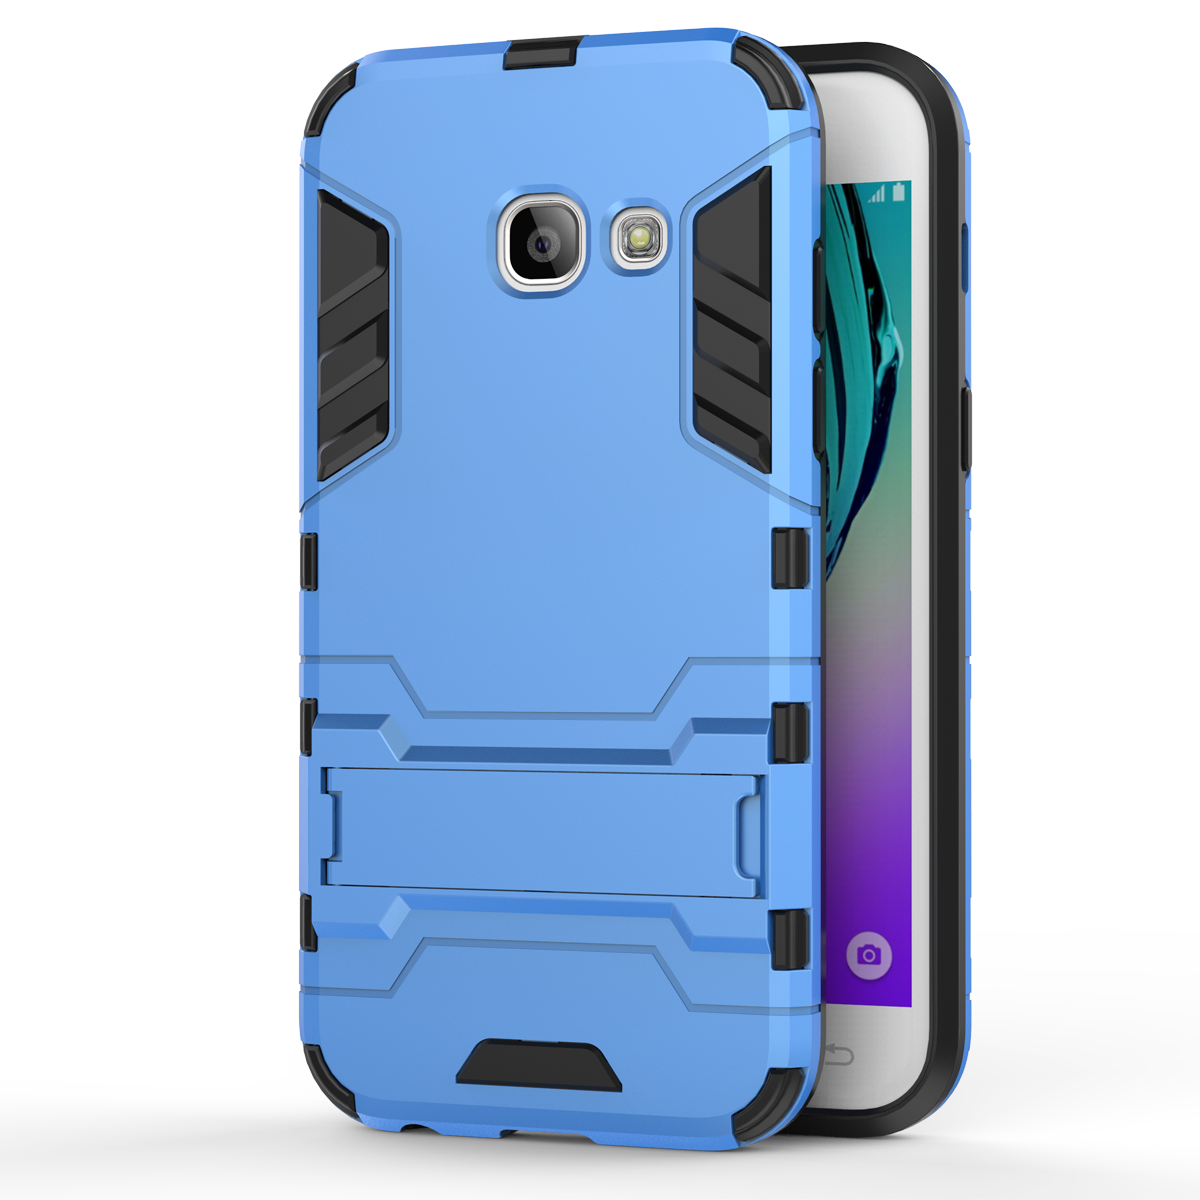 Armor Kickstand Protective Phone Cover Case for Samsung Galaxy A3 (2017) - Blue